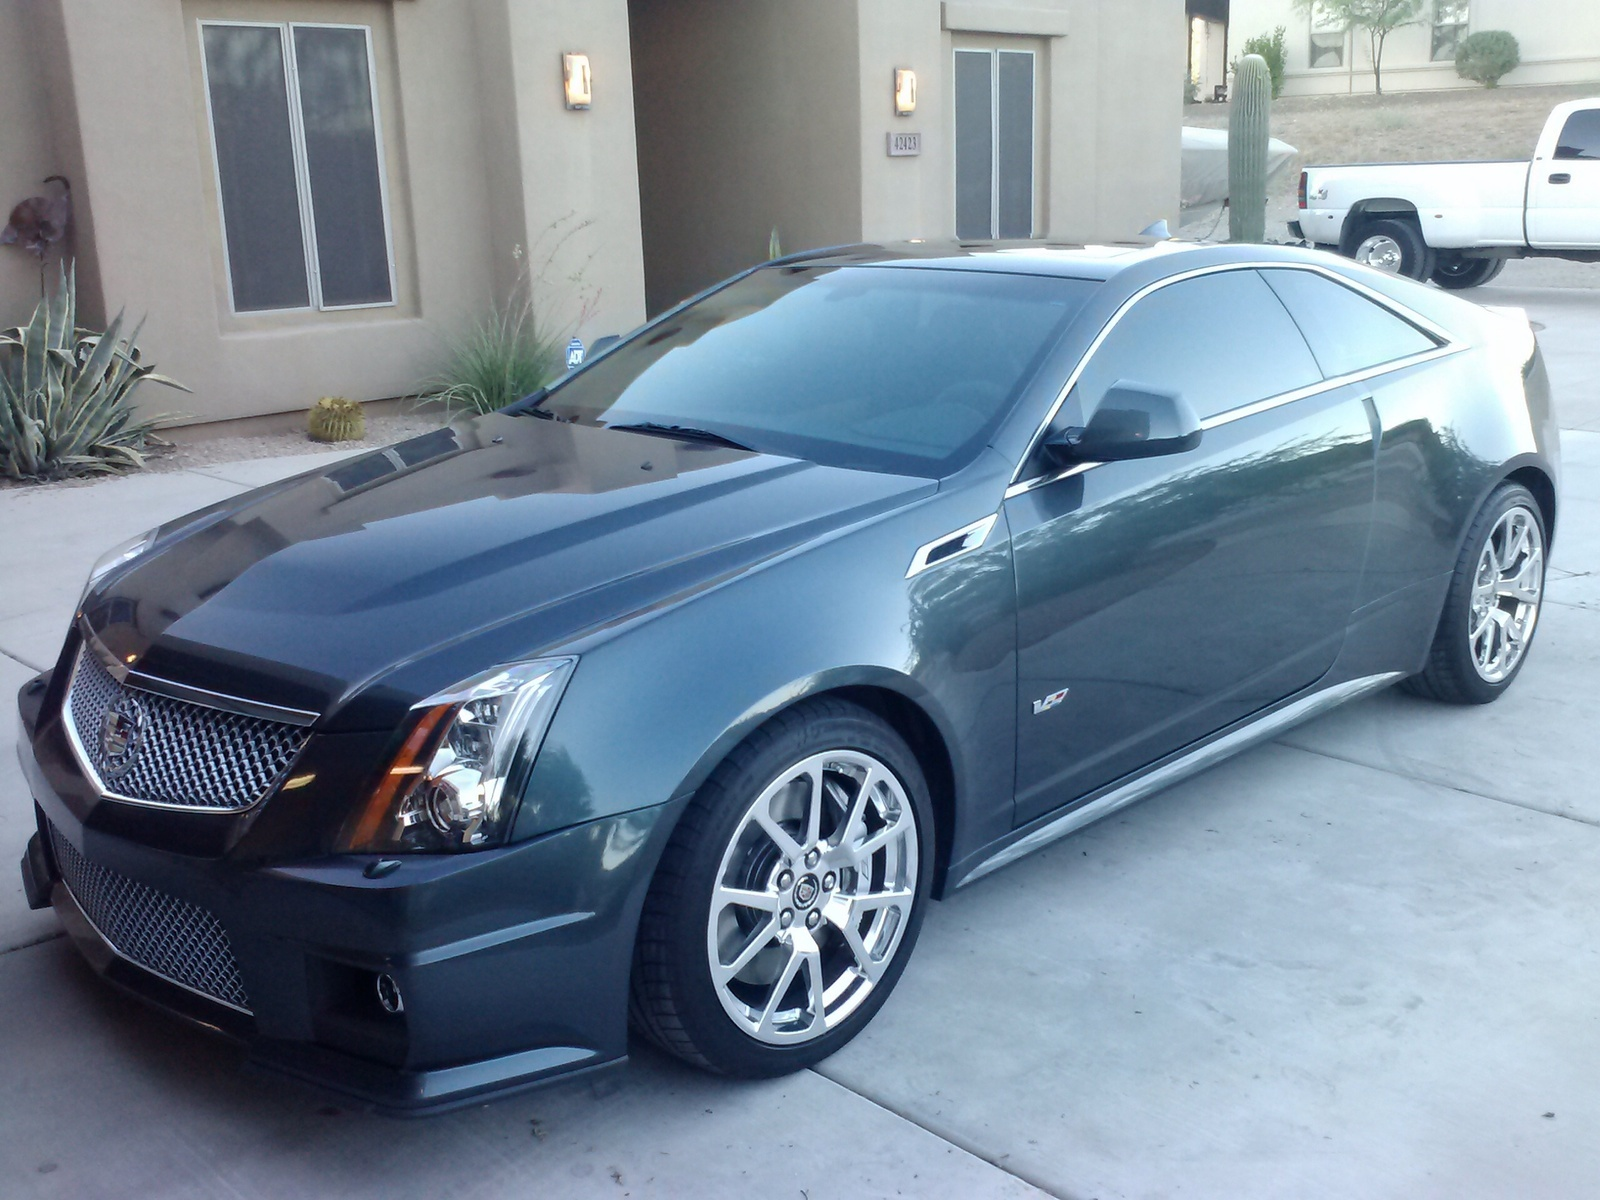 Cadillac Cts V Wagon For Sale >> 2012 Cadillac CTS-V Coupe - Overview - CarGurus